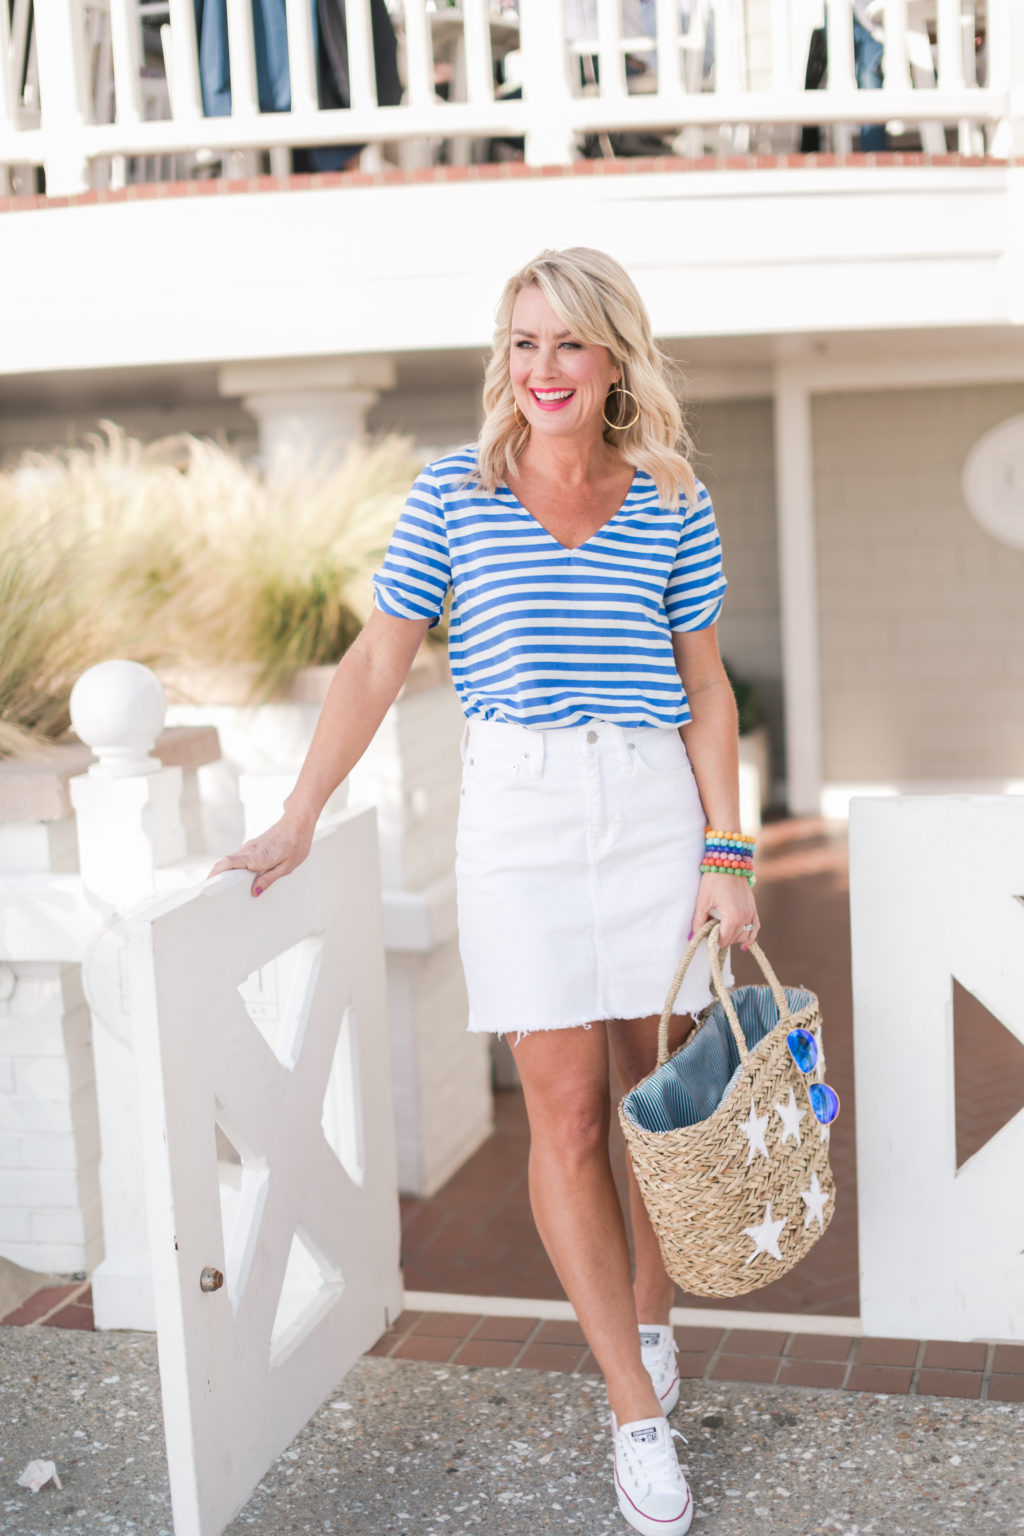 gibson hi sugarplum collection nordstrom anna maria short sleeve detail v neck tee royal ocean stripe